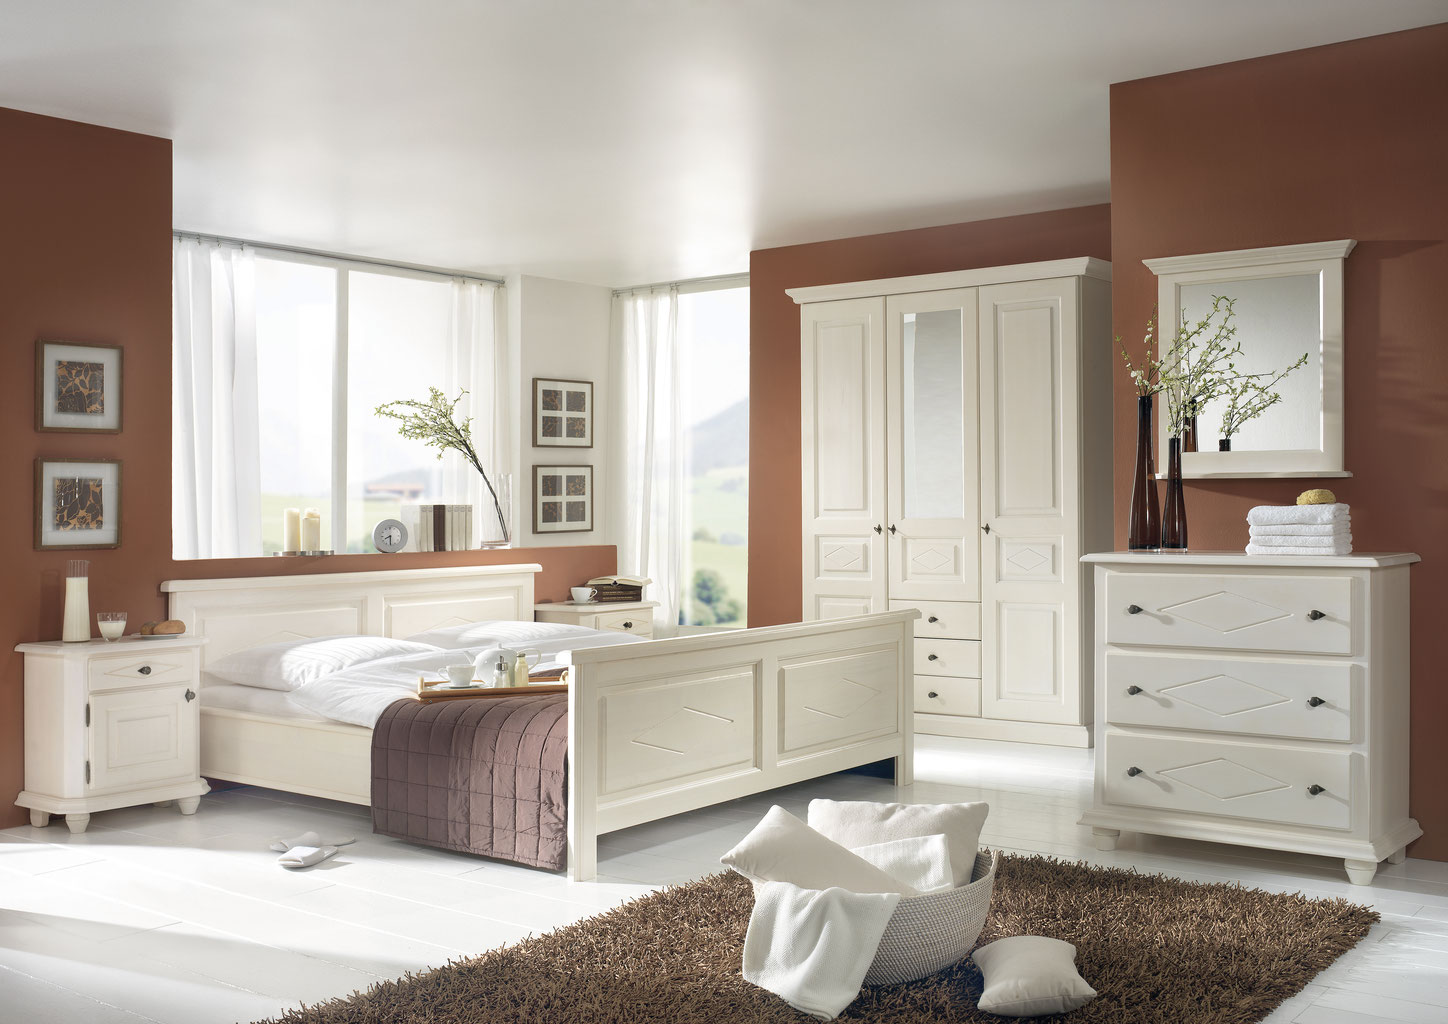 romantisches schlafzimmer naturnah m bel moderne. Black Bedroom Furniture Sets. Home Design Ideas